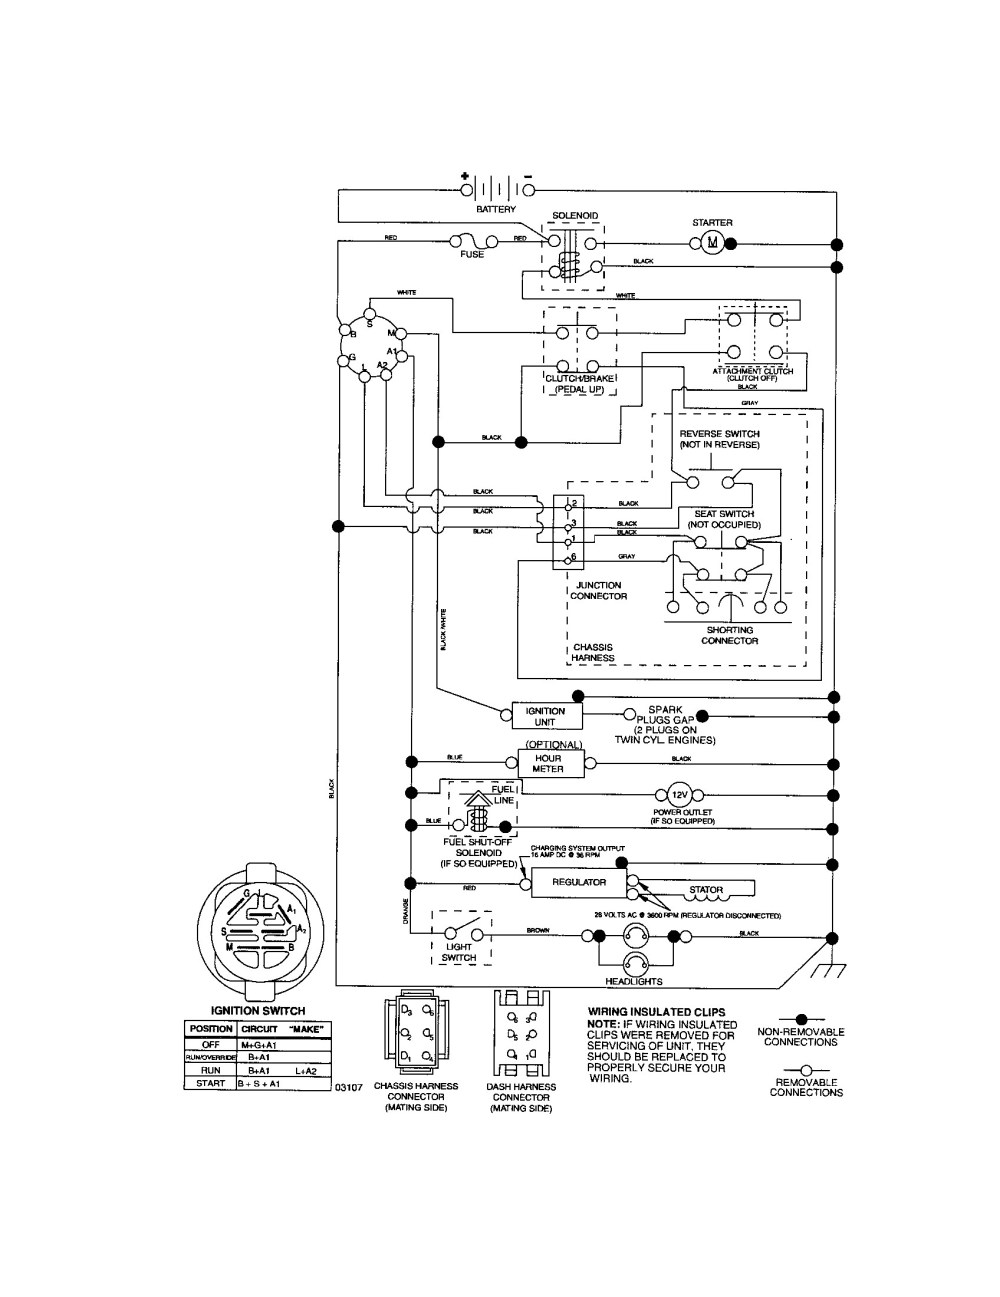 medium resolution of craftsman pto switch wiring diagram free wiring diagram rh ricardolevinsmorales com chelsea electric pto switch wiring